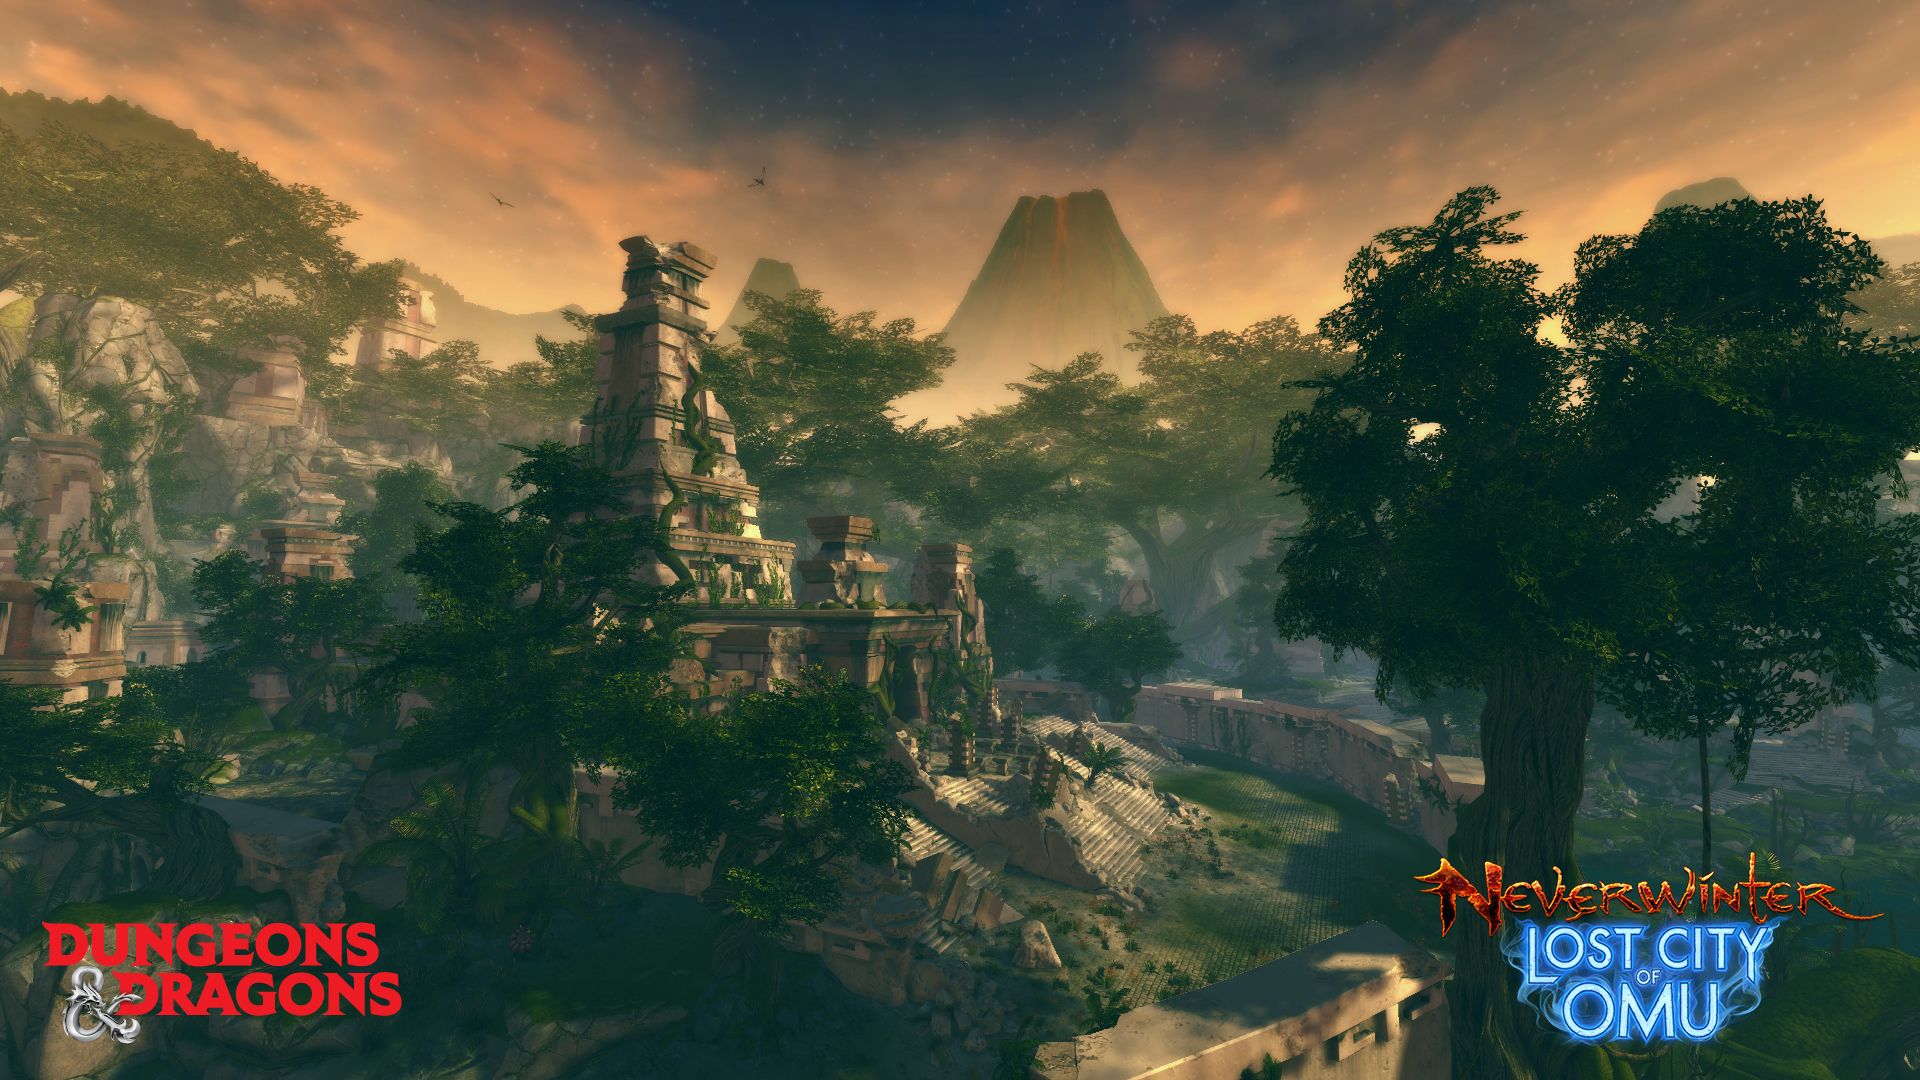 neverwinter_the_lost_city_of_omu.png